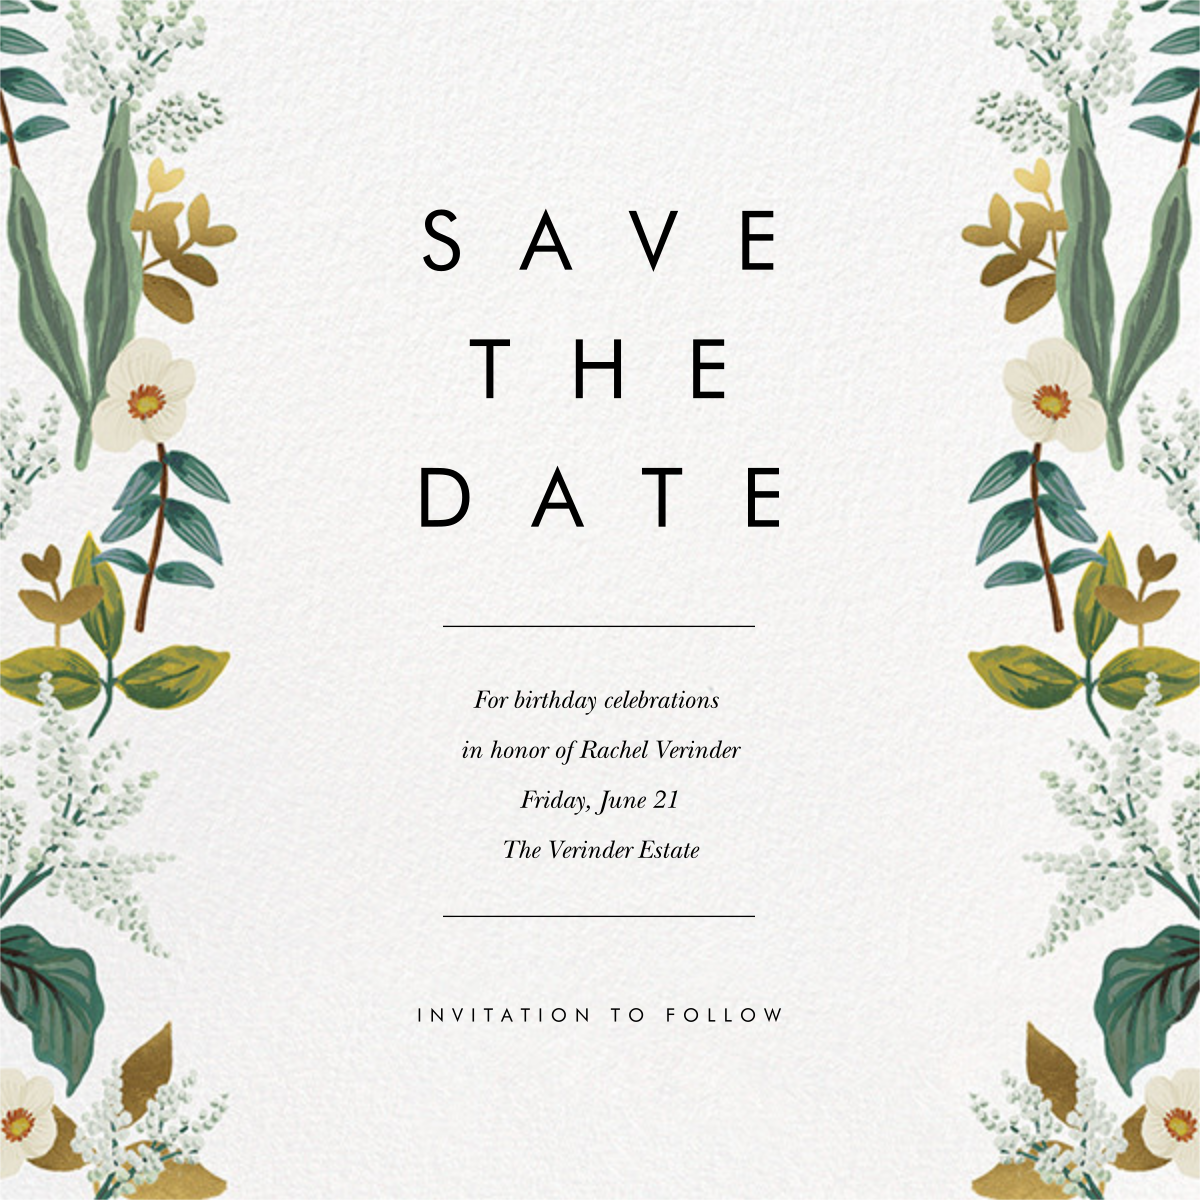 Meadow Garland (Square) - Rifle Paper Co. - Birthday save the dates